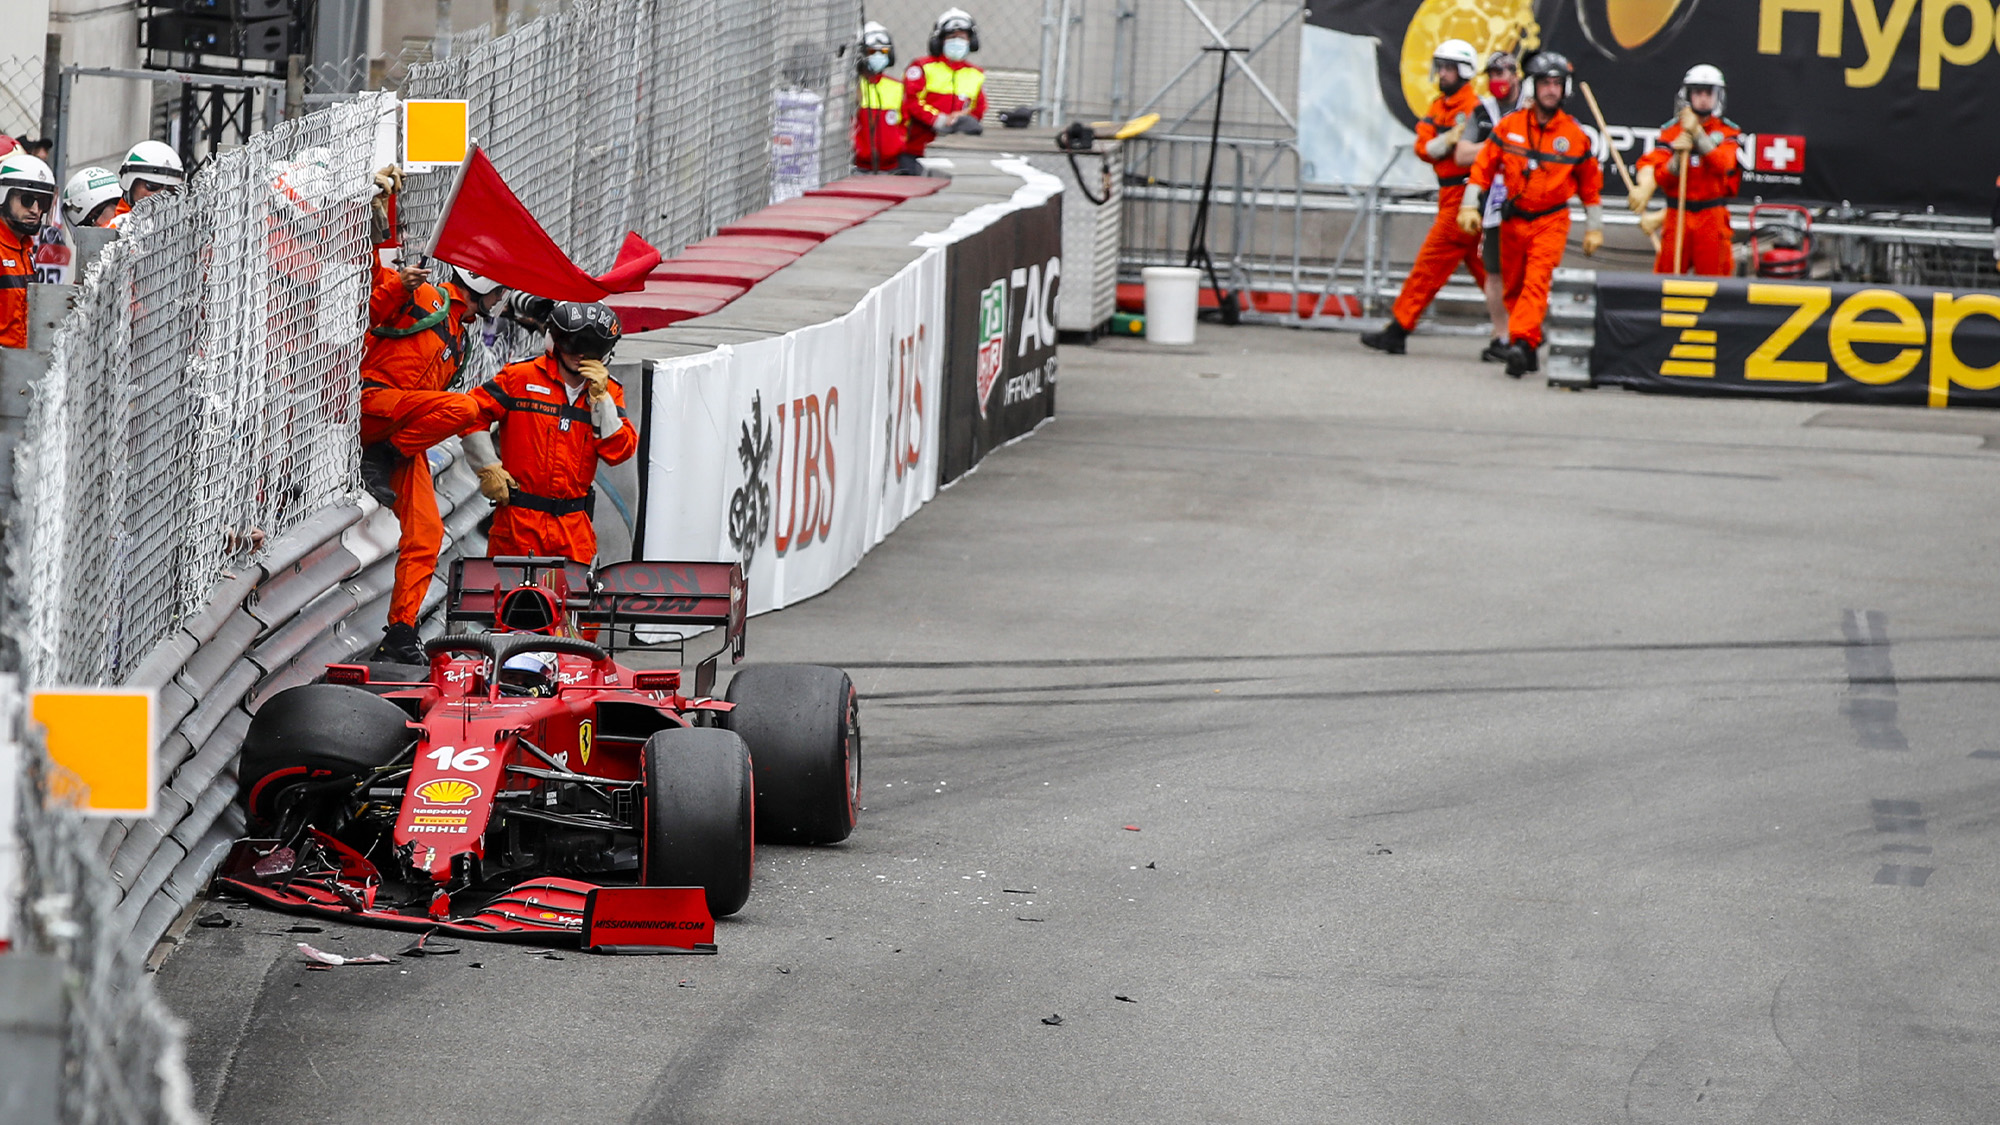 charles leclerc crashes in qualifying for the 2021 f1 monaco grand prix - front